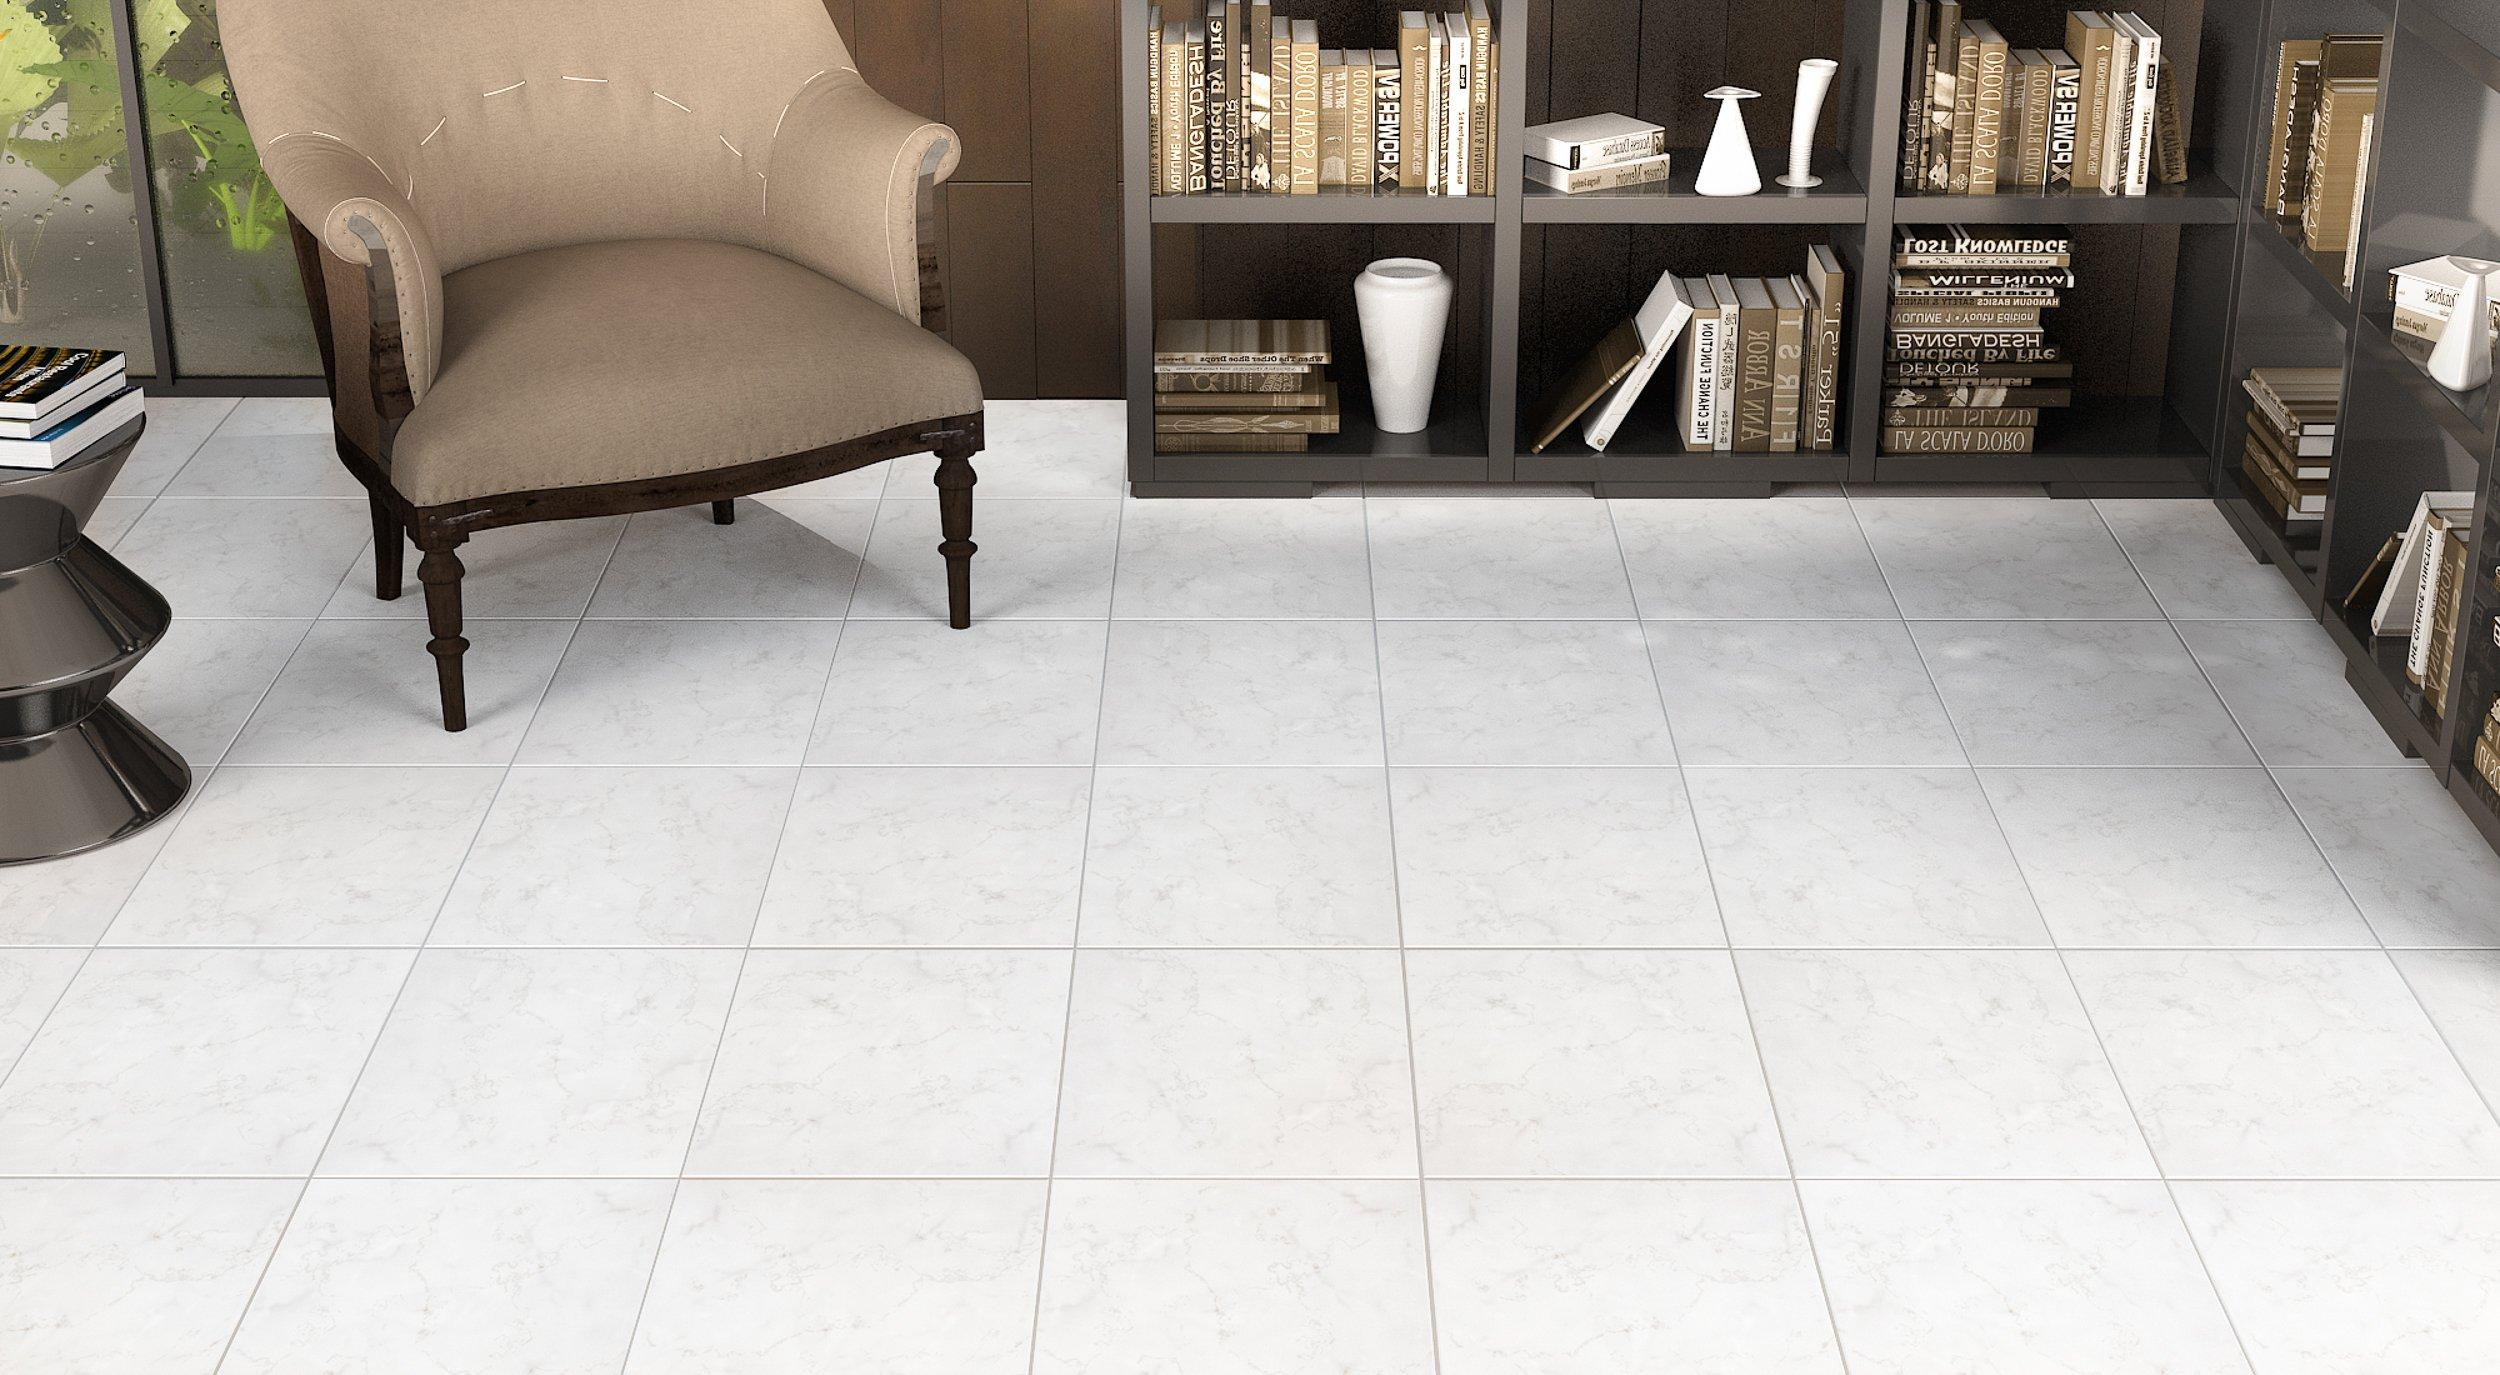 Maly ceramic tile co all things tile and flooringllery soho ceramic tile milwaukee images dailygadgetfo Images